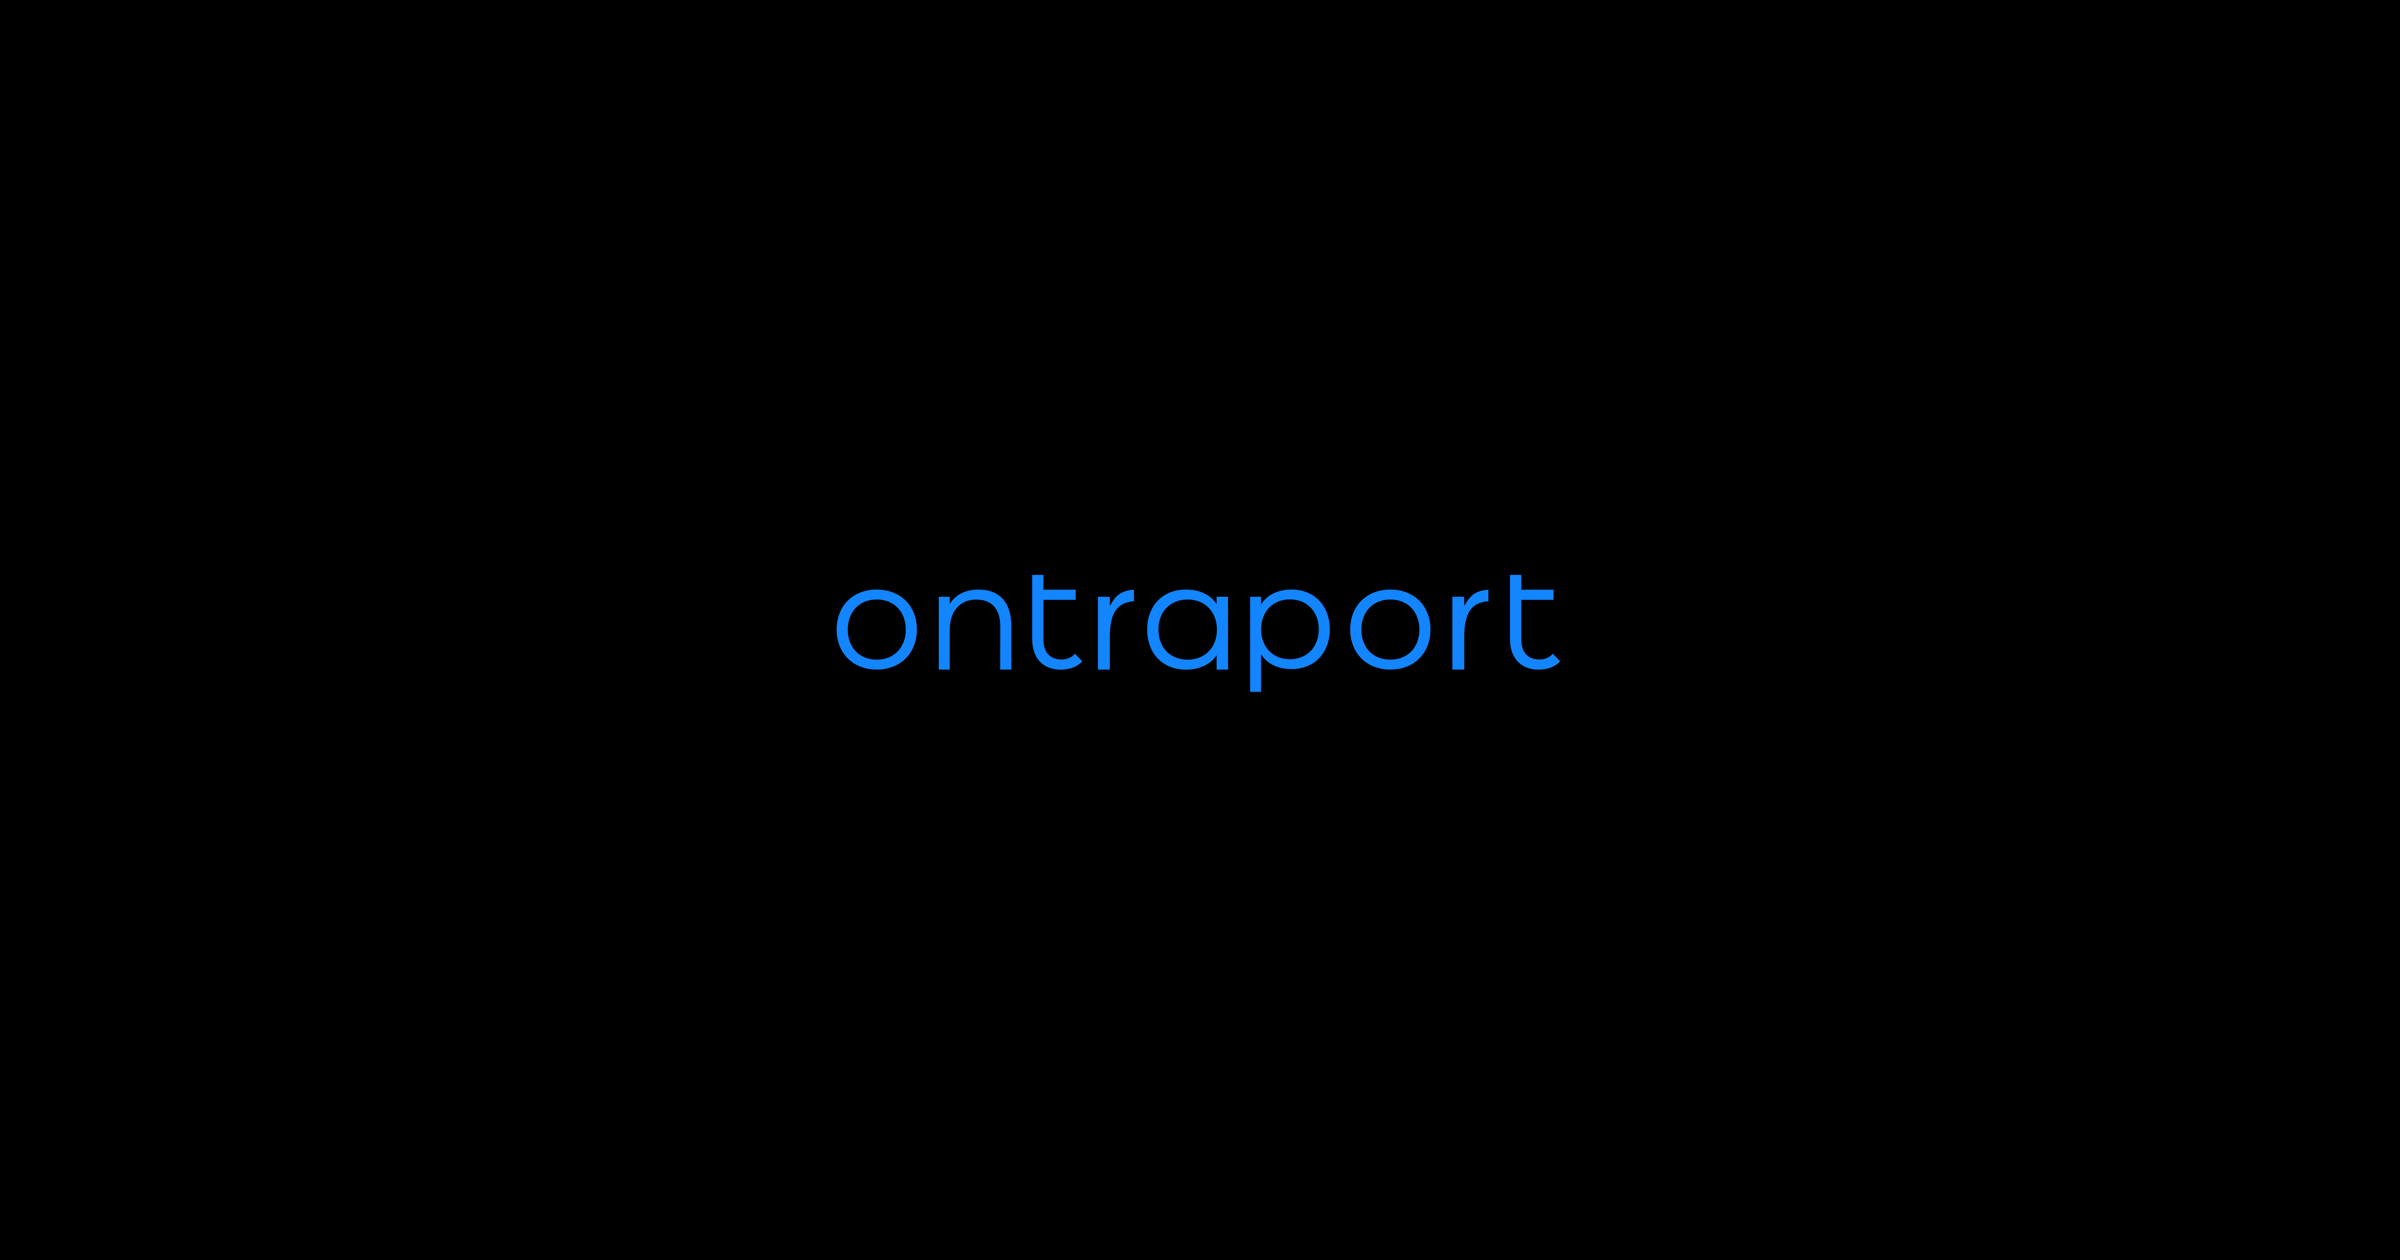 Ontraport | The sales and marketing platform for growing businesses